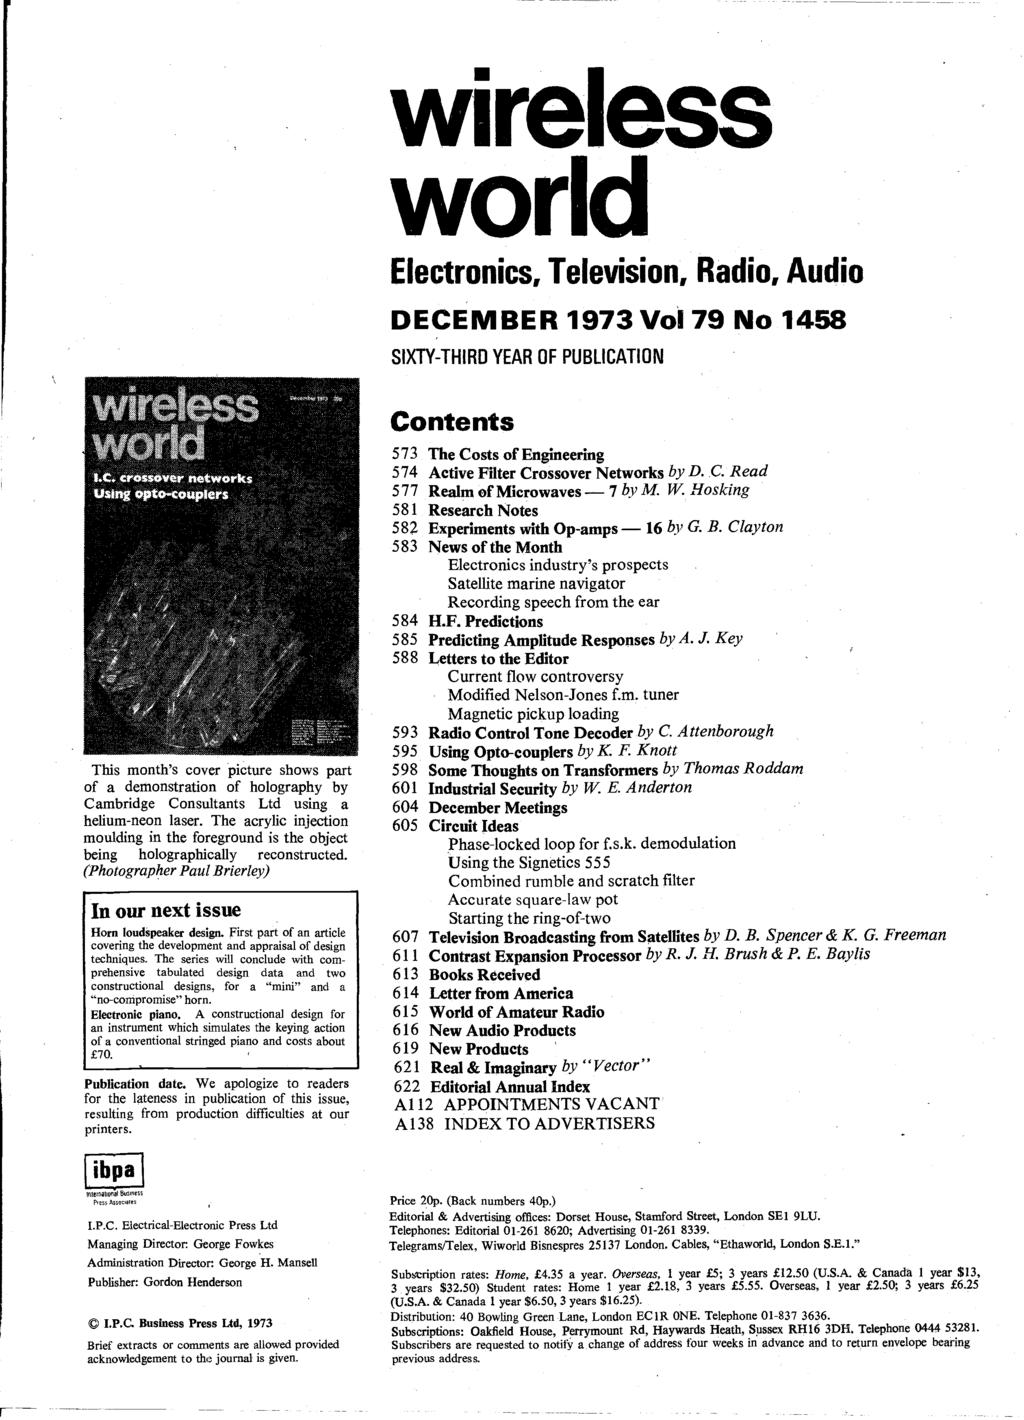 Word Ic Crossover Networks Using Opto Couplers December P Pdf Universal Multiflex Frigidaire Electric Dryer Wiring Diagram Parts Wireless World Electronics Television Radio Audio 1973 Vol 79 No 1458 Sixty